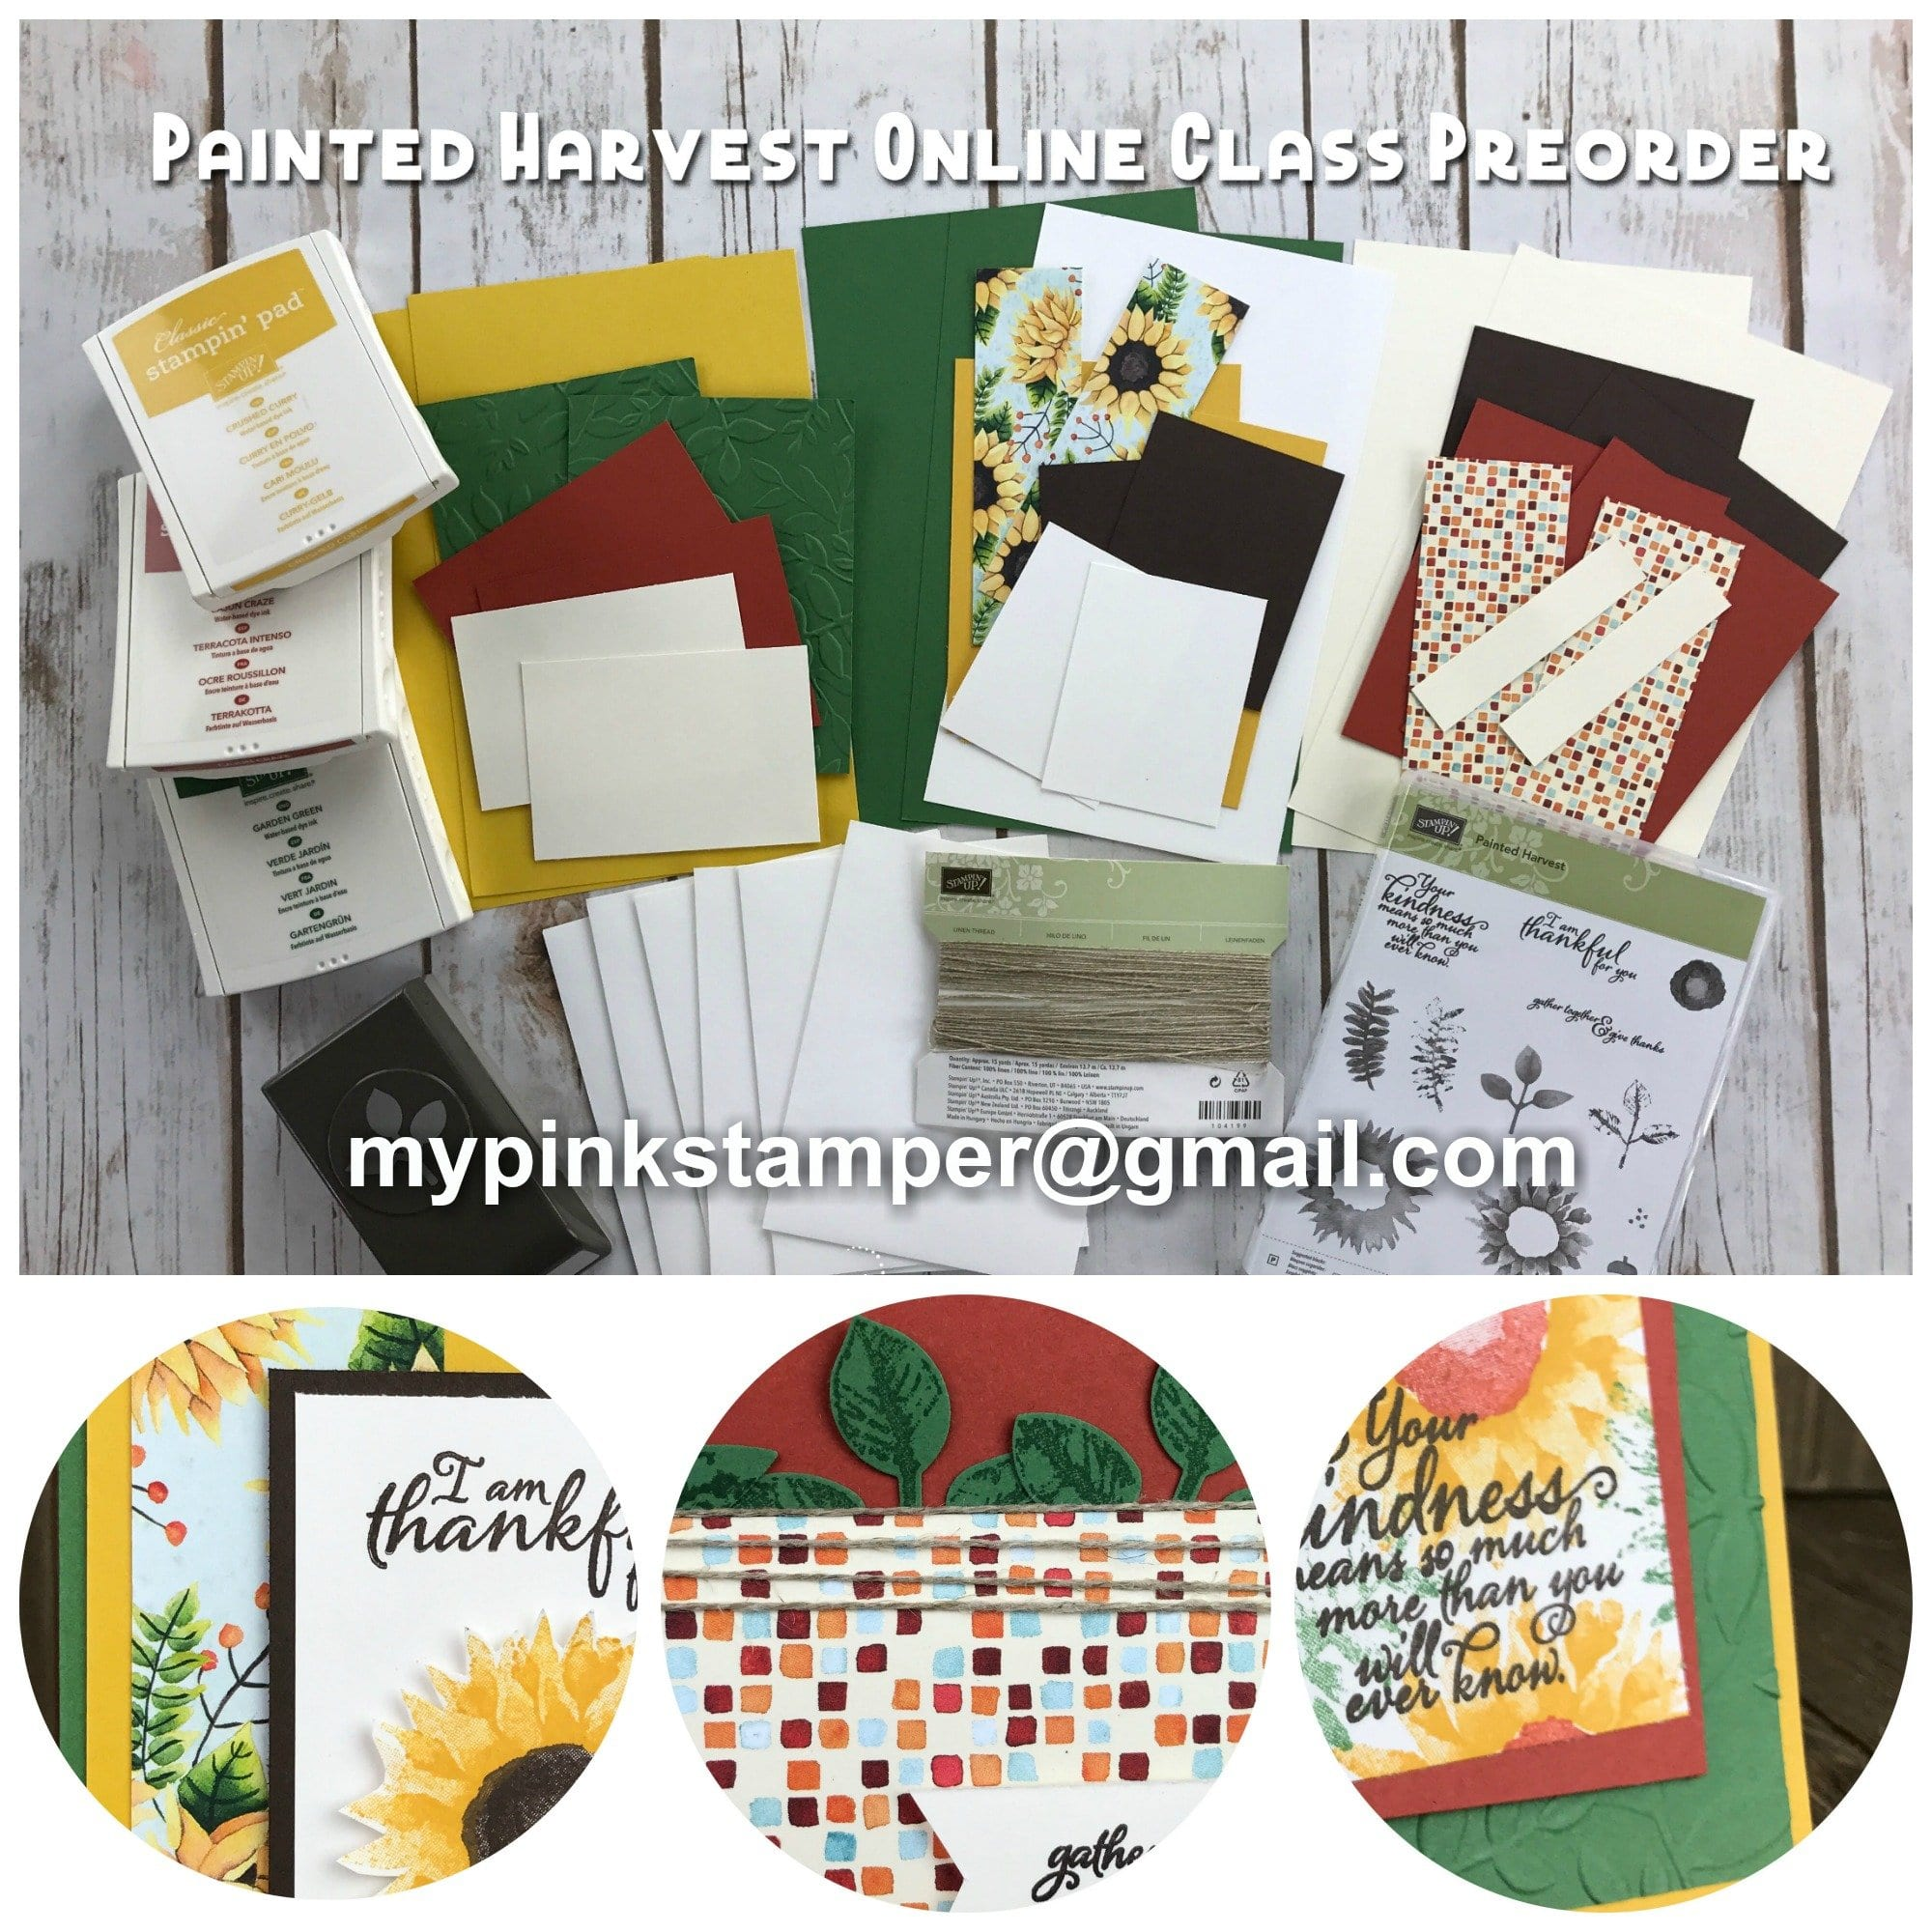 Stampin' Up! Painted Harvest Online Class Preorder!